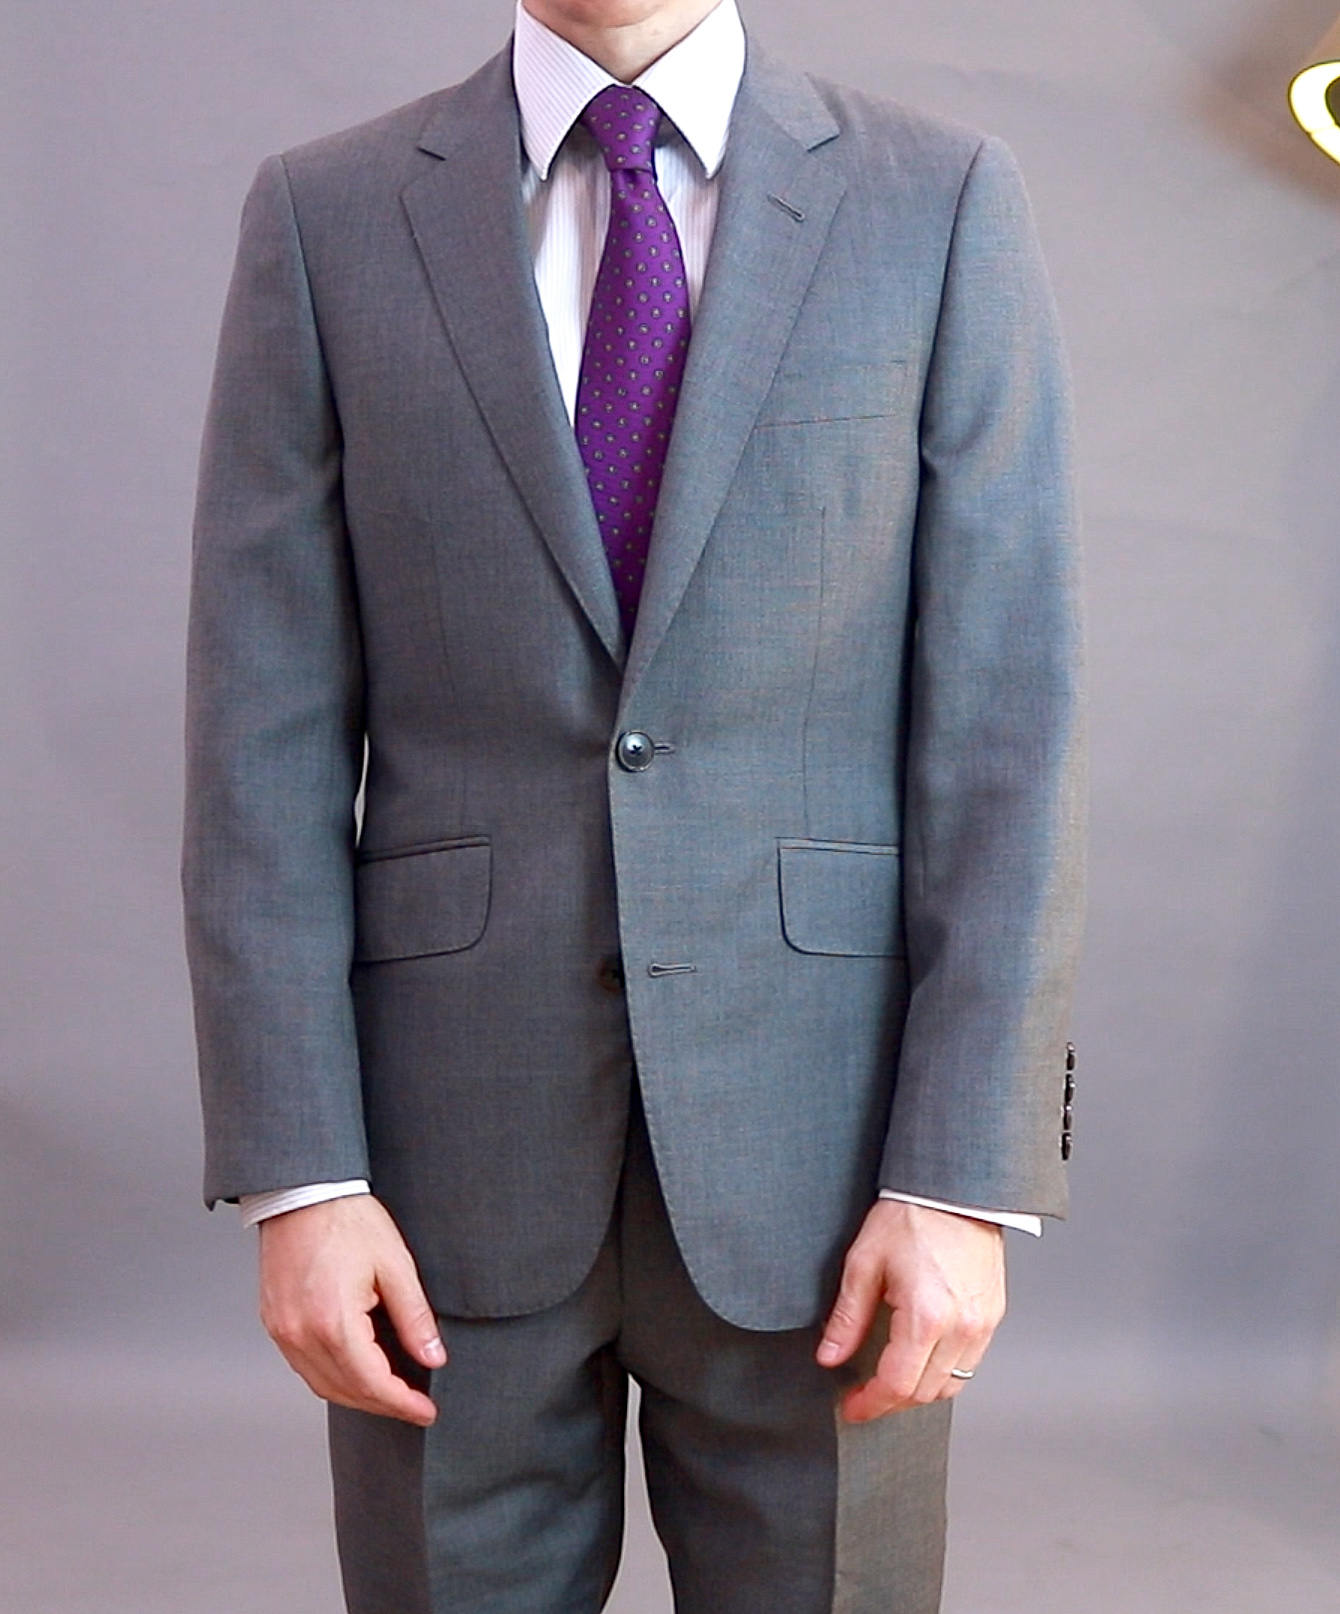 Alan David bespoke suit